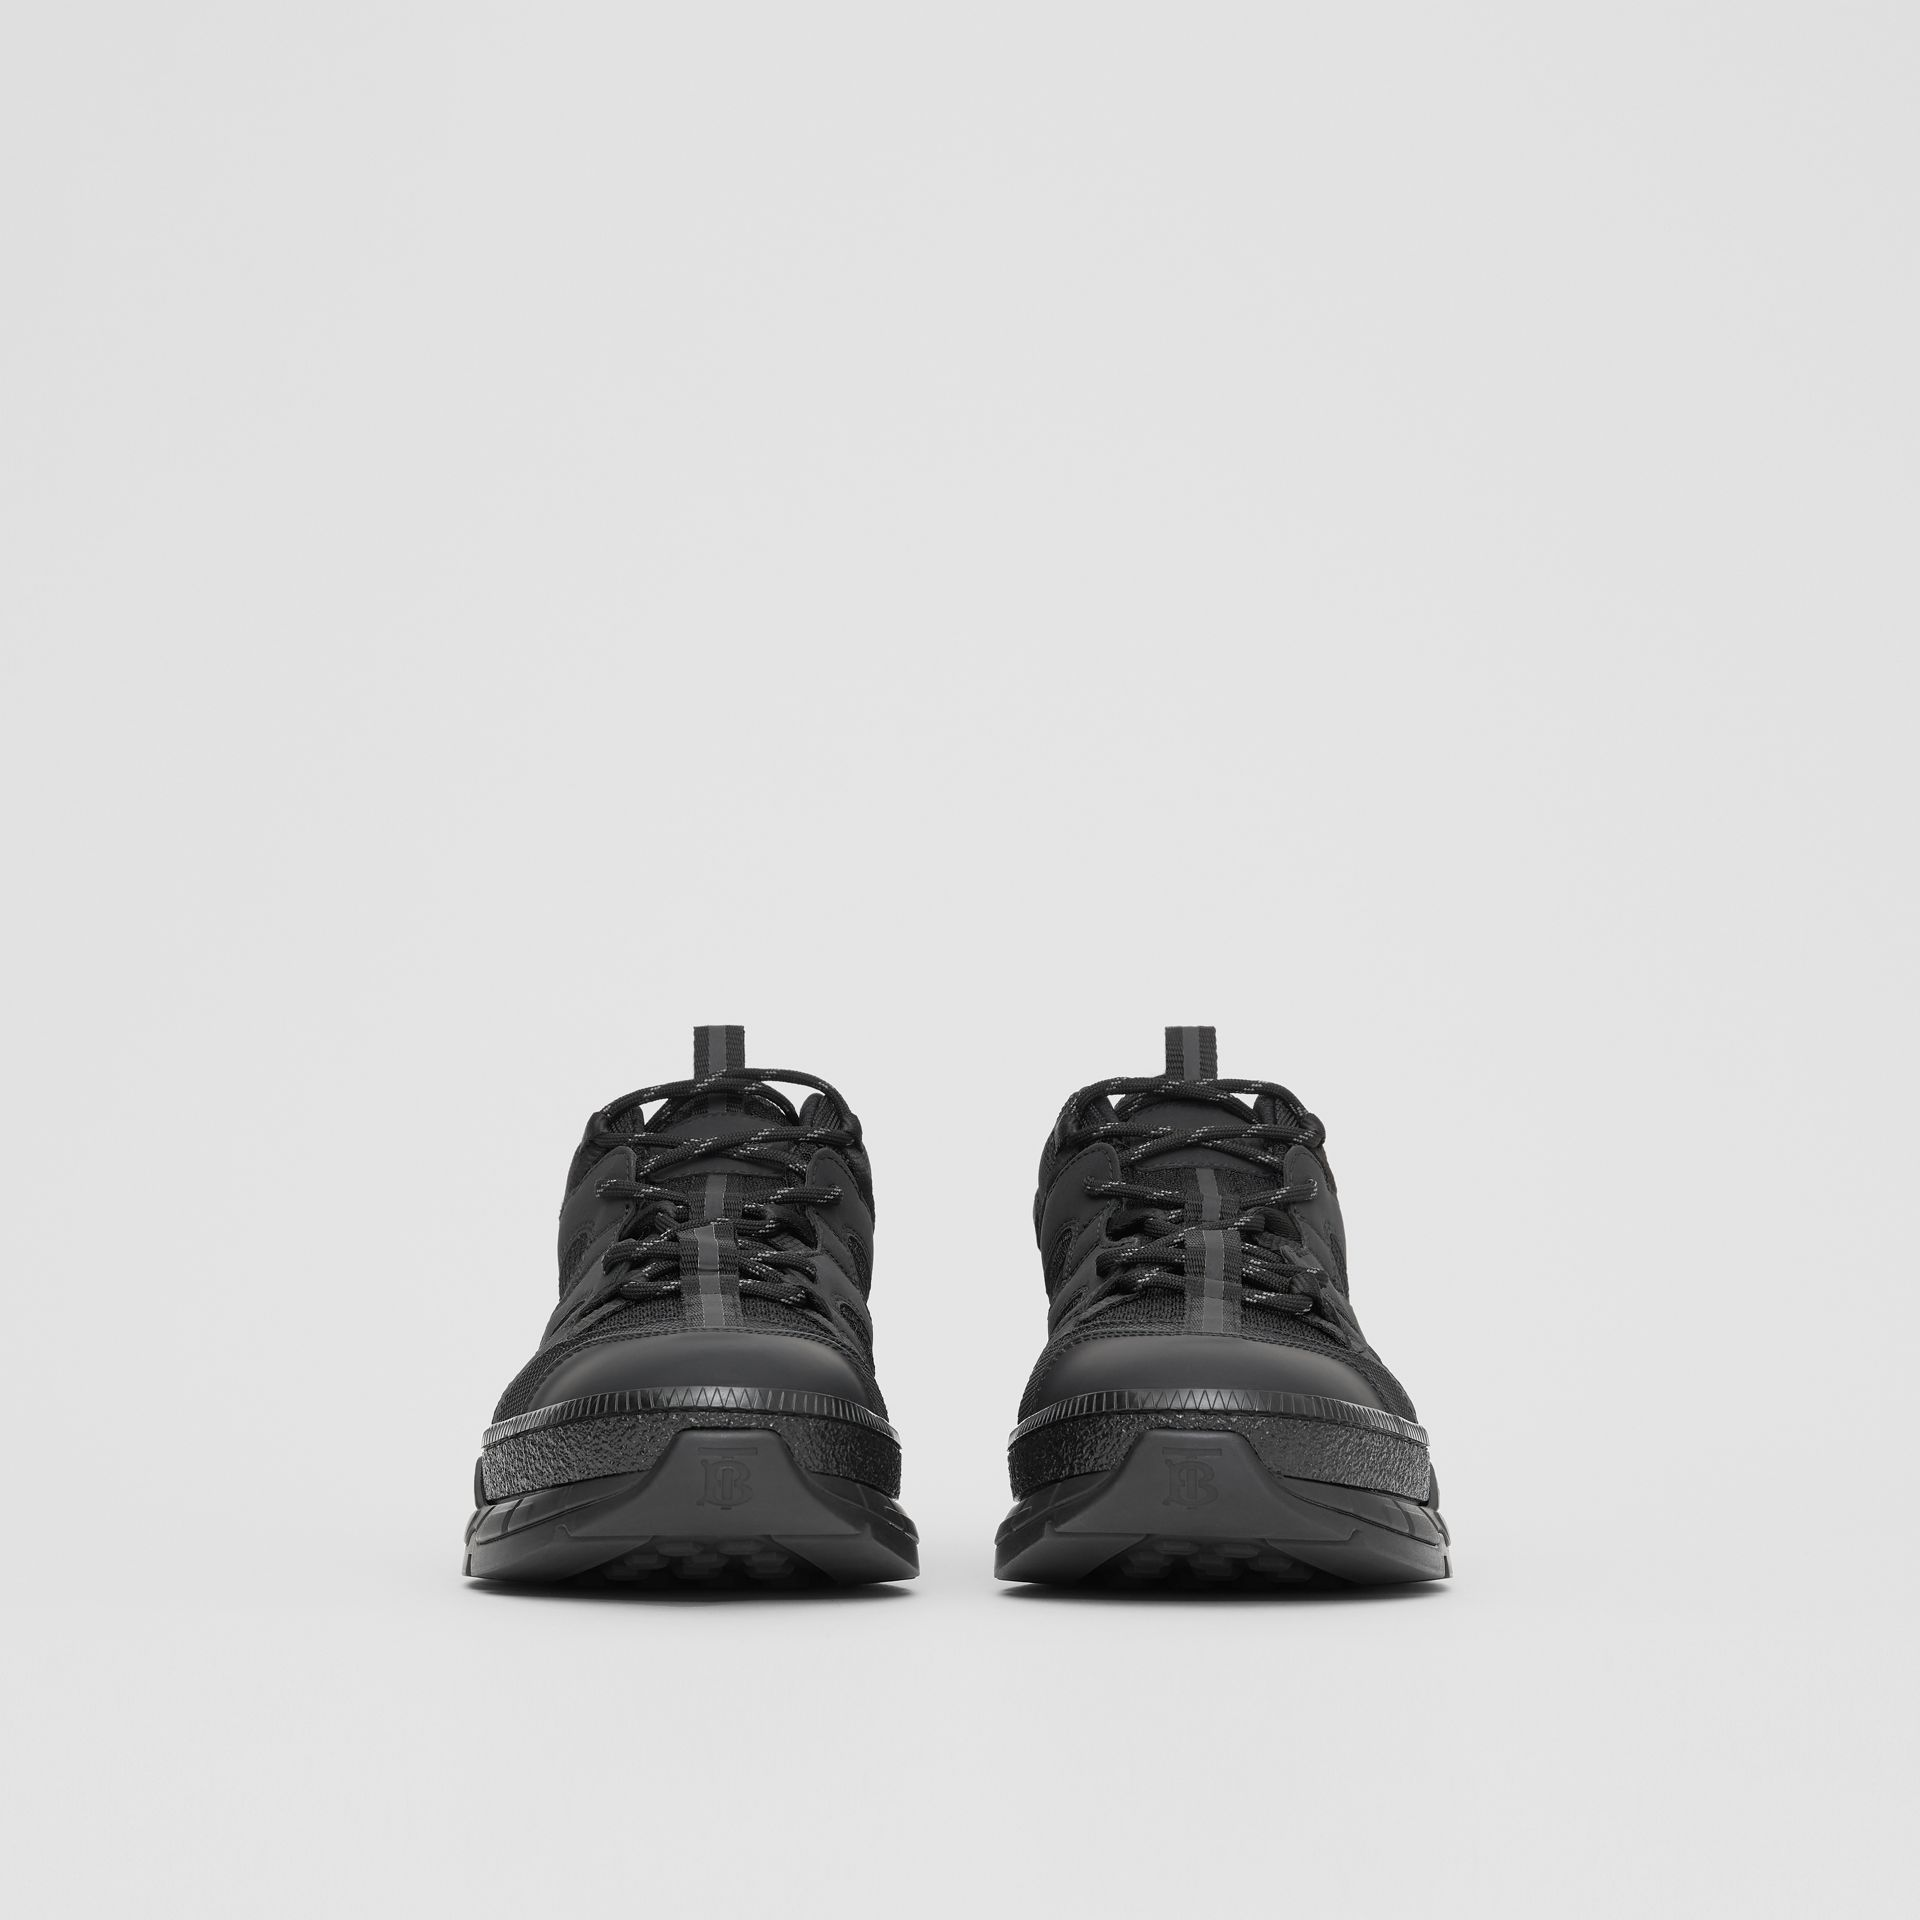 Sneakers en filet et nubuck (Noir) - Homme | Burberry - photo de la galerie 2